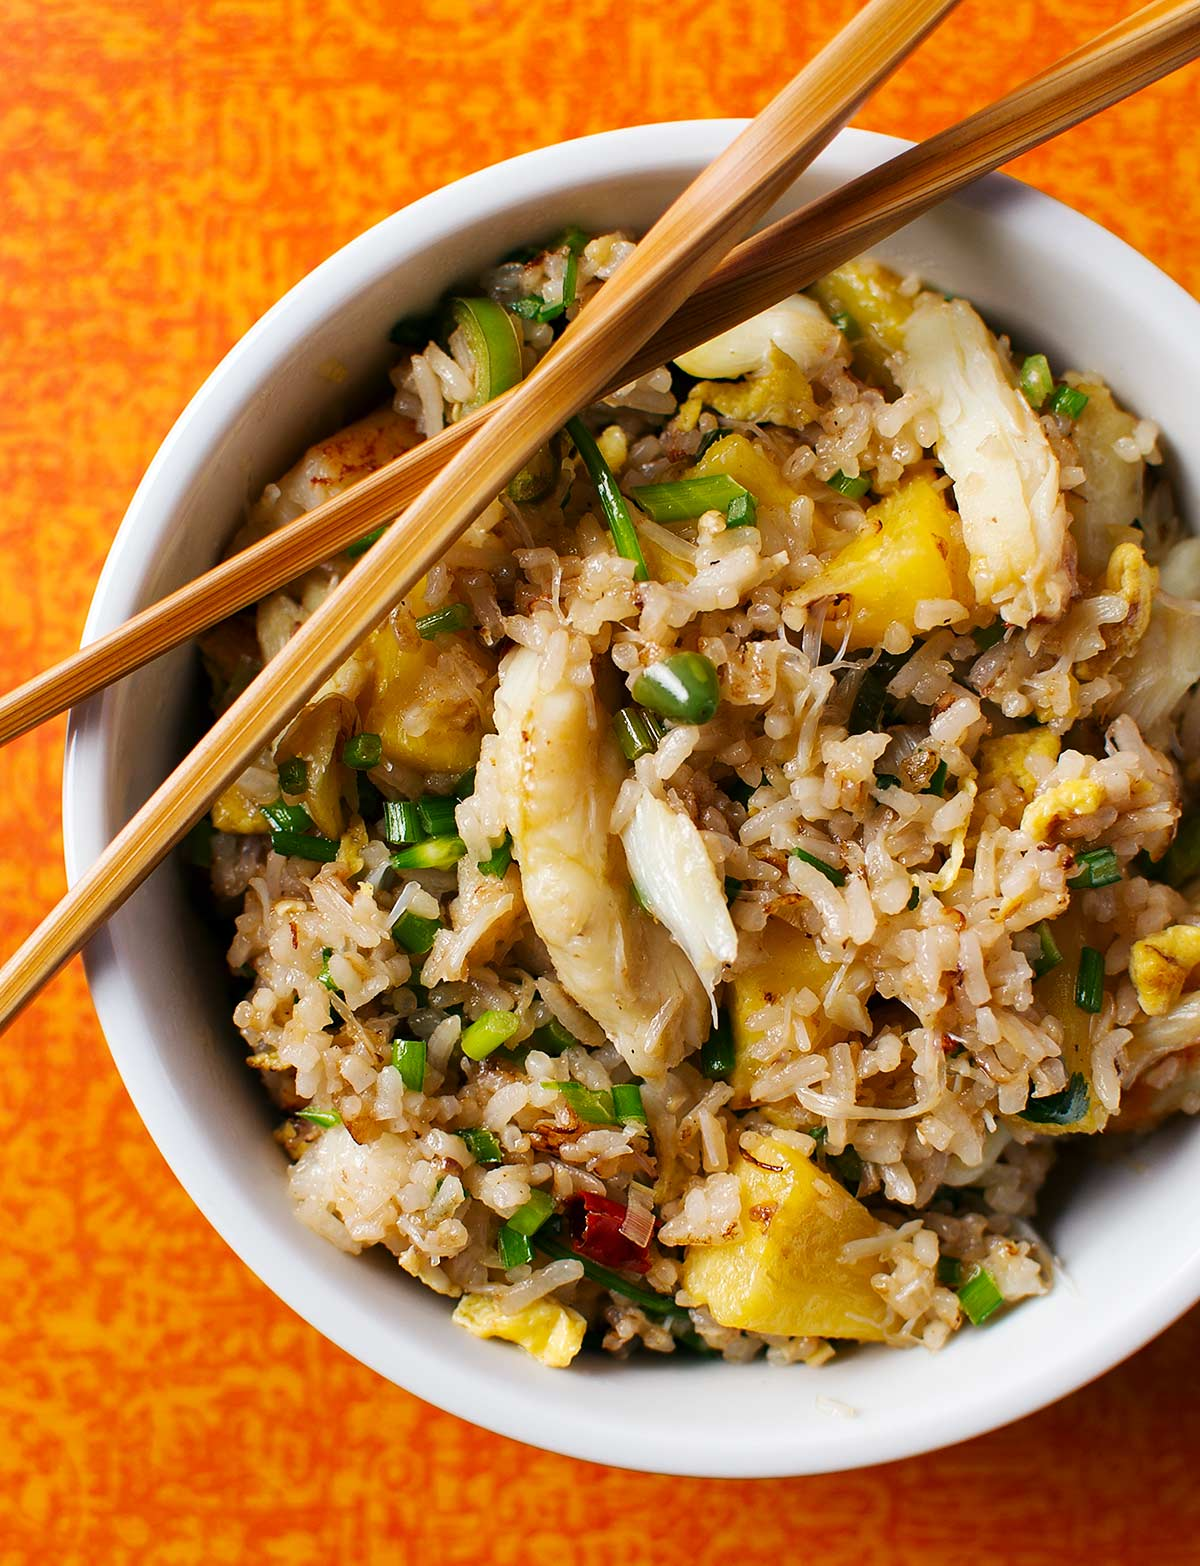 A bowl of crab fried rice